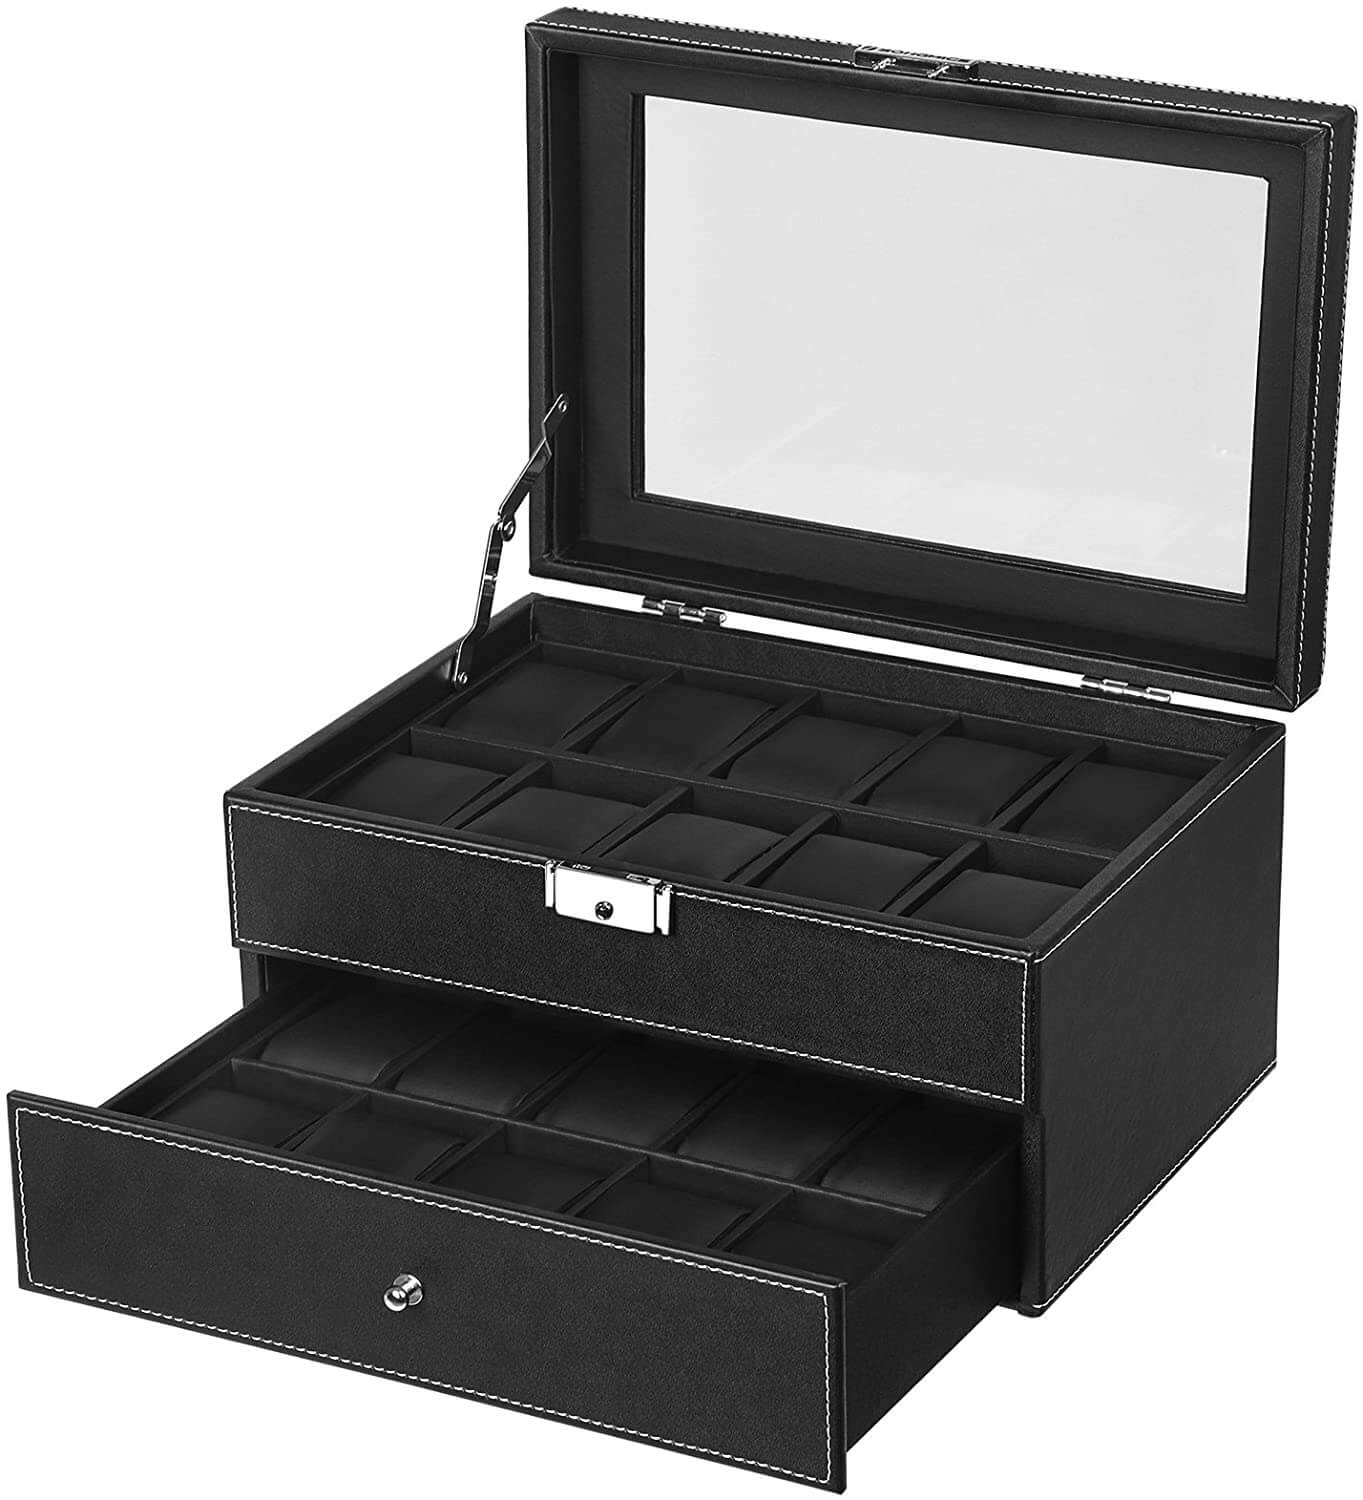 Enjoy fast, free nationwide shipping!  Family owned and operated, HawkinsWoodshop.com is your one stop shop for affordable furniture.  Shop HawkinsWoodshop.com for solid wood & metal modern, traditional, contemporary, industrial, custom, rustic, and farmhouse furniture including our 20 Slots Lockable Watch Box in Black.